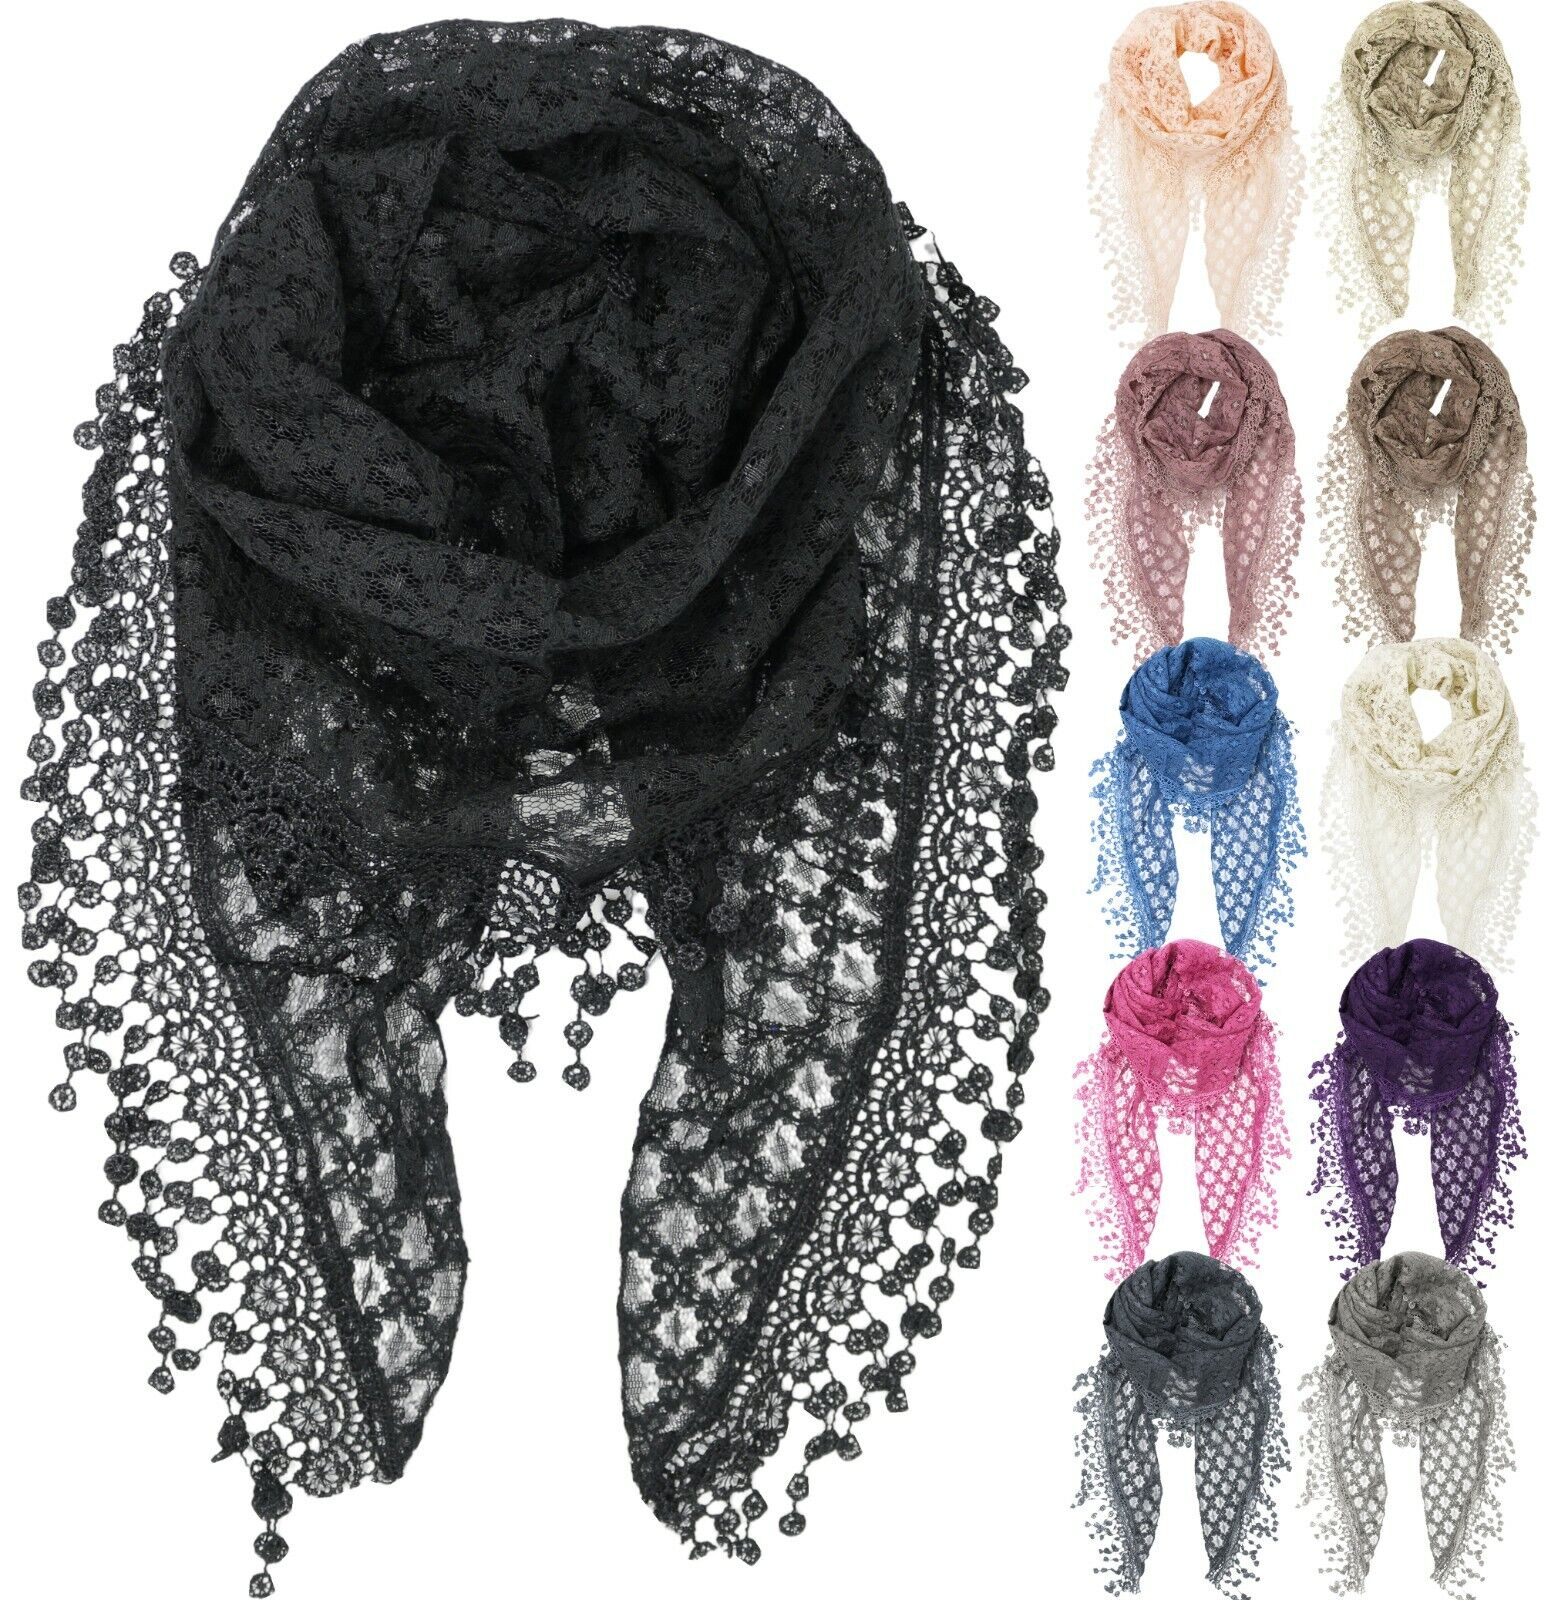 Lace Triangle Sheer Scarf / Hip Scarf Cover-up Clothing, Shoes & Accessories